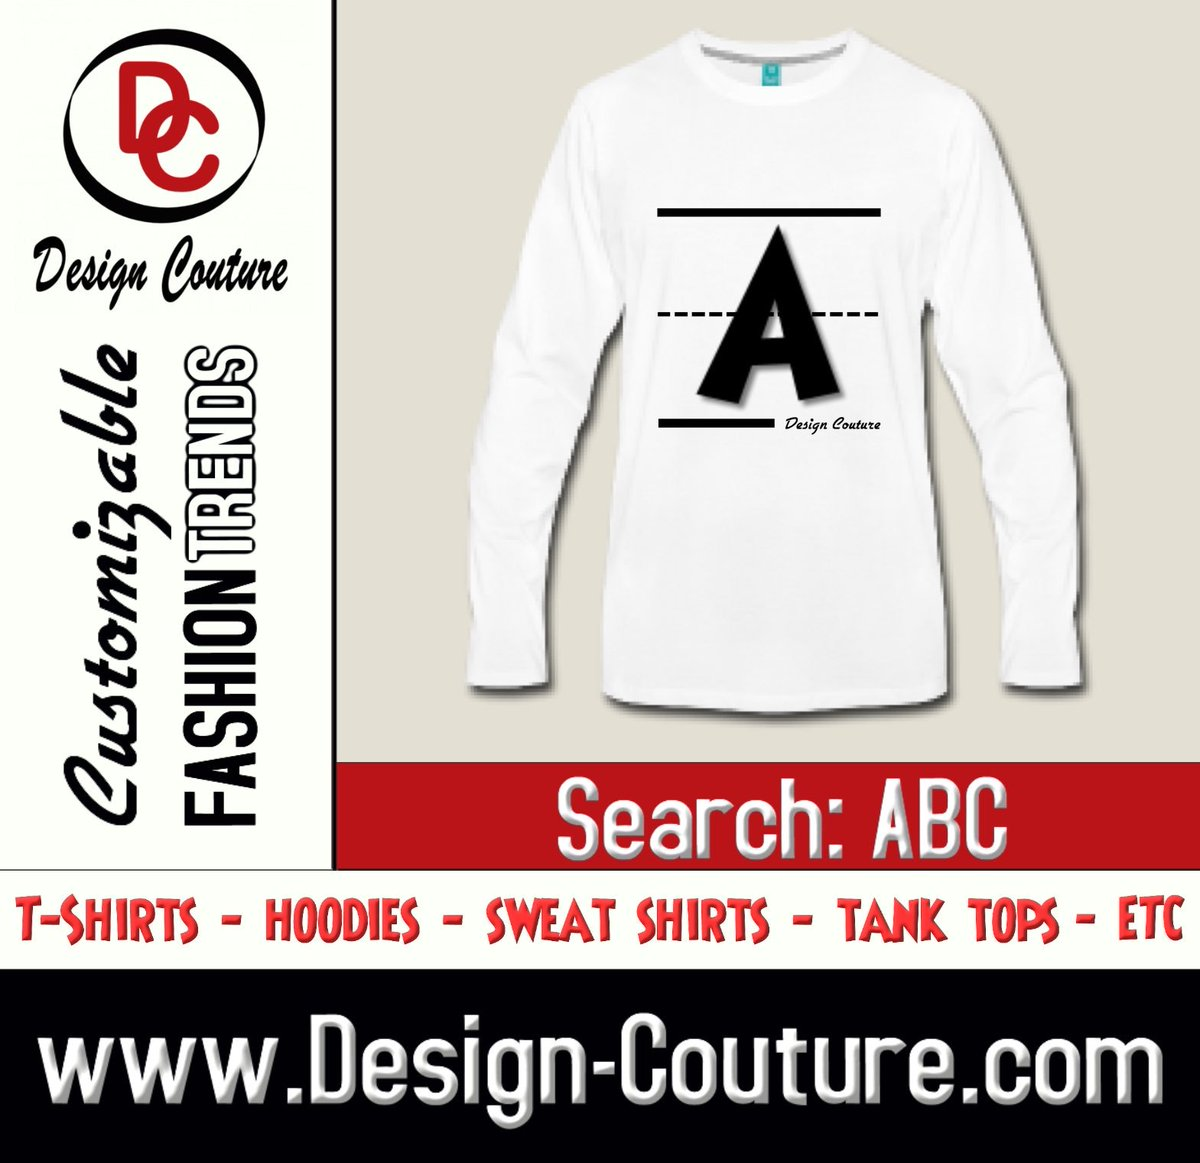 Make a Bold Fashion Statement with Design Couture Customizable Fashion Trends and More.  Design: A Search: ABC https://t.co/NACycnvT1Y Order yours today. New Designs Uploaded Daily! Design Couture is a division of JiGANTiC Entertainment  IG: @jiganticentertainment https://t.co/j22s7EAb0b